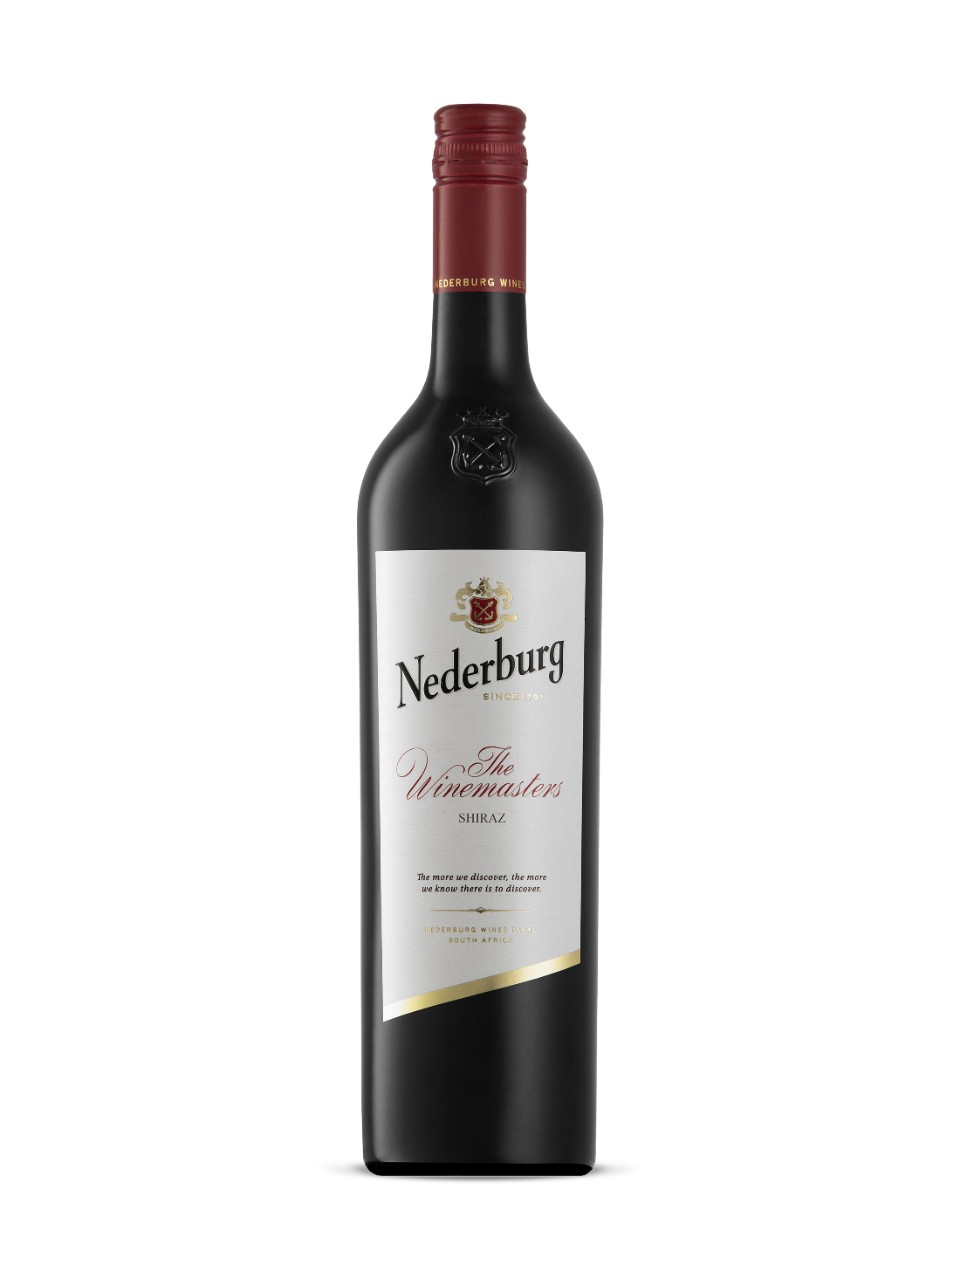 Shiraz Winemaster's Nederburg